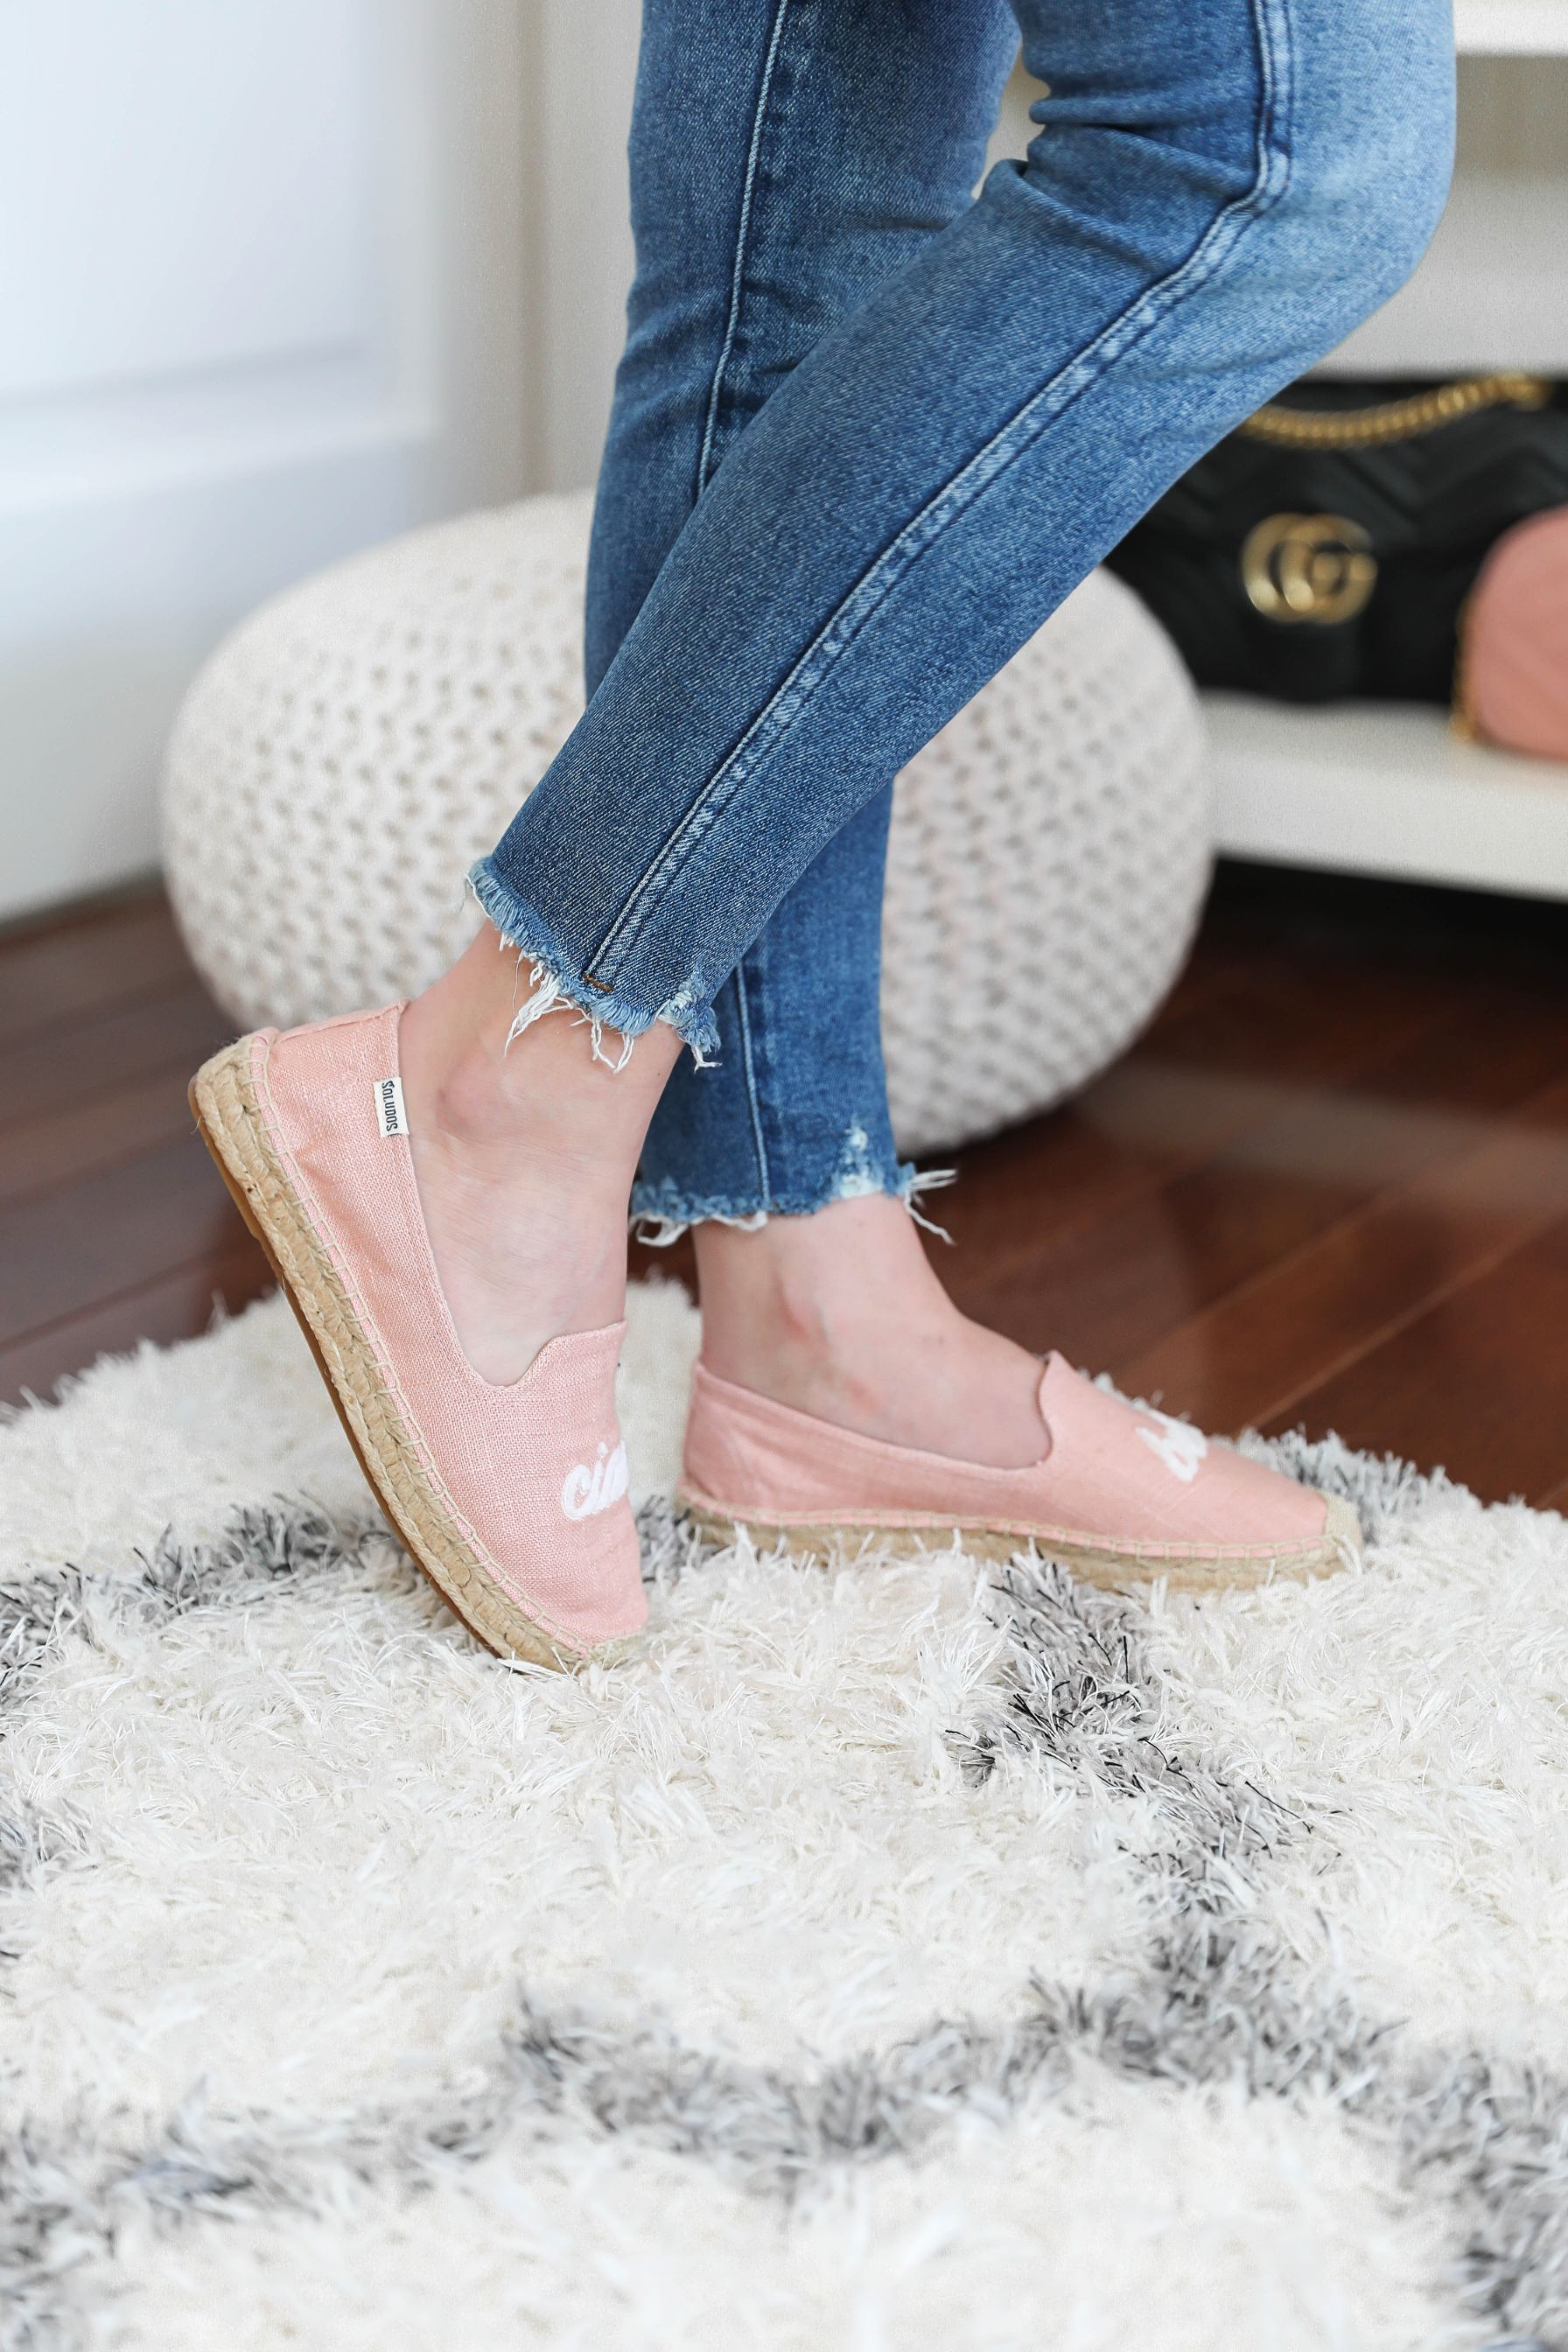 Espadrille spring shoes roundup! The cutest wedges and sandals on fashion blog daily dose of charm by lauren lindmark